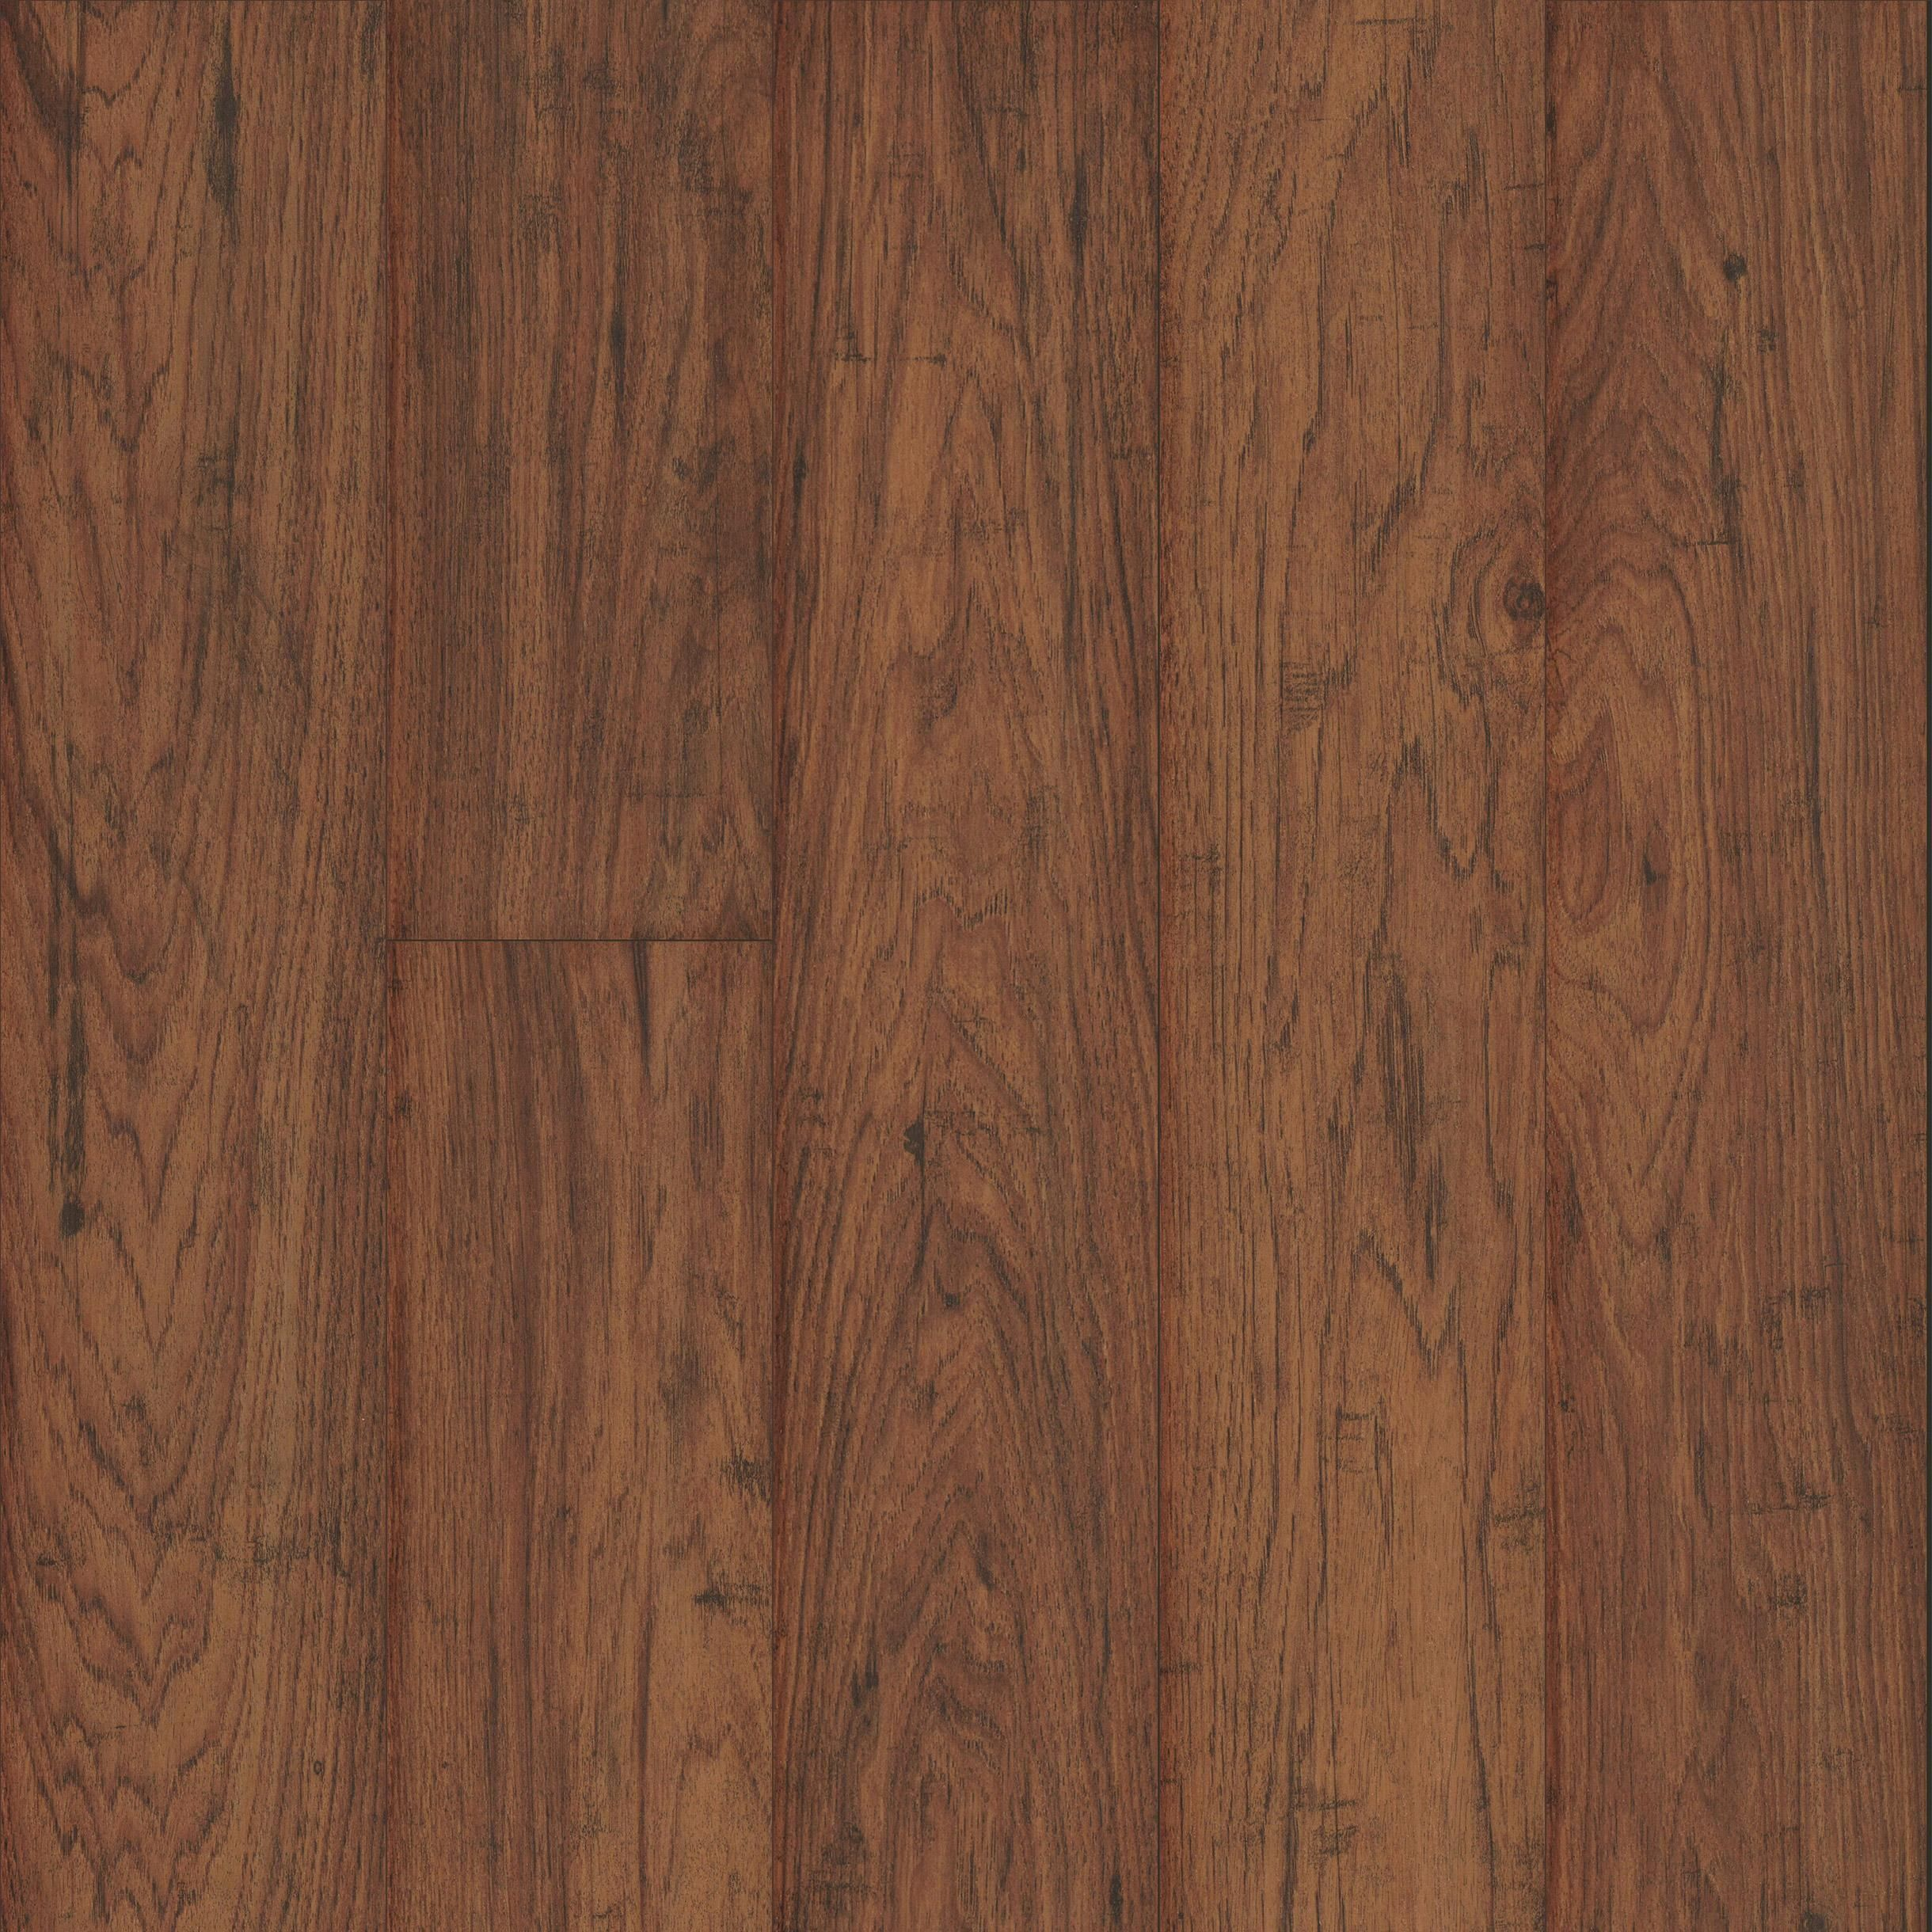 Quick Step Uniclick Rustique Amber Hickory 8mm Laminate Flooring Laminate Flooring Flooring Discount Laminate Flooring